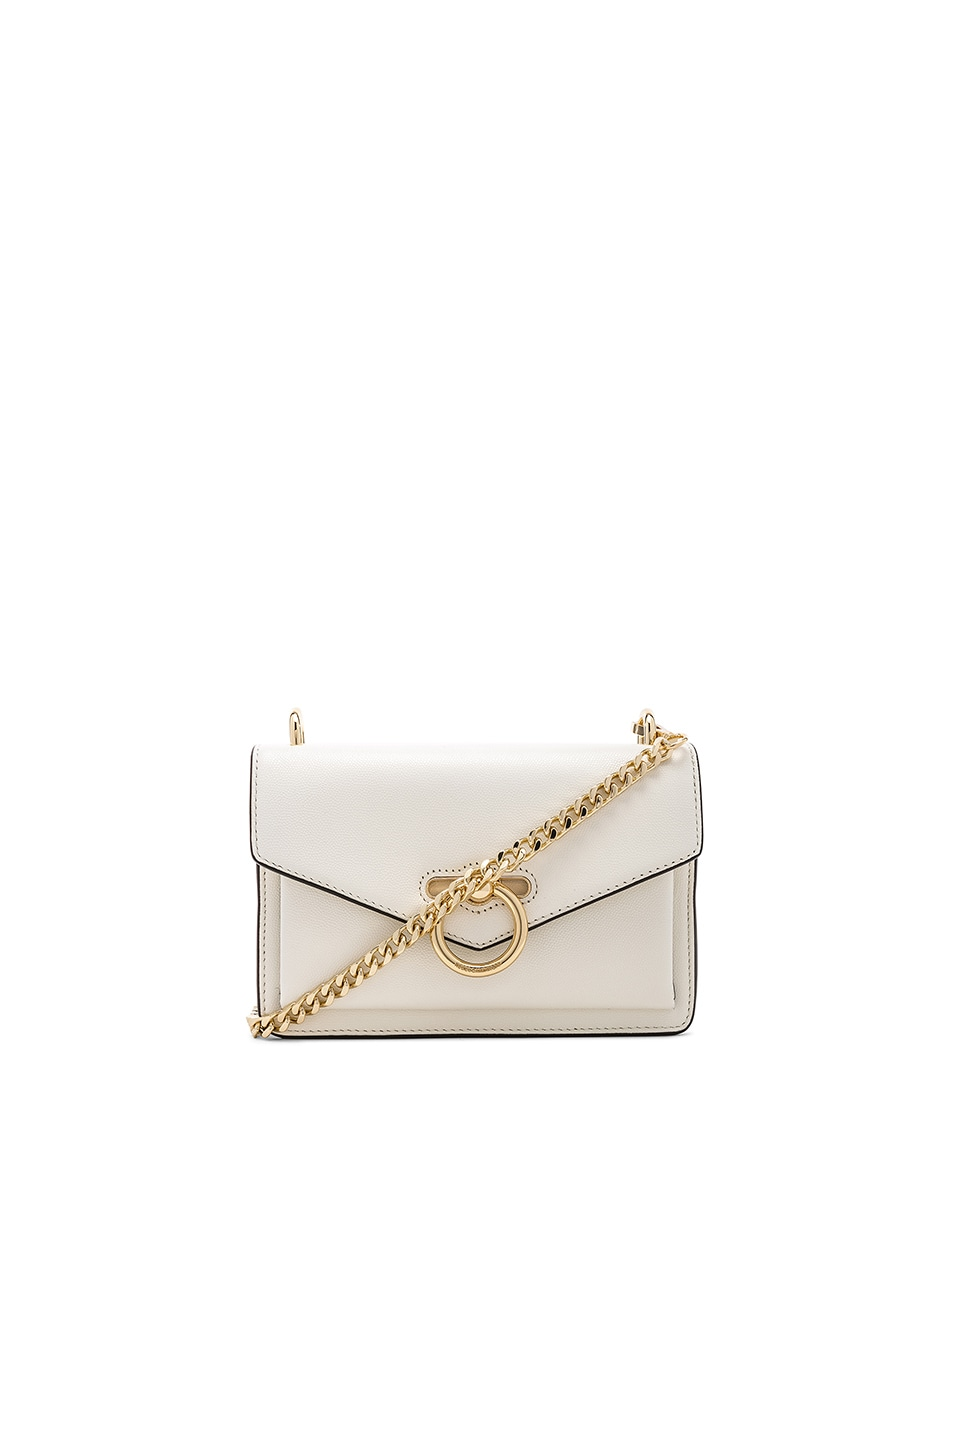 Rebecca Minkoff Jean Crossbody Bag in Optic White